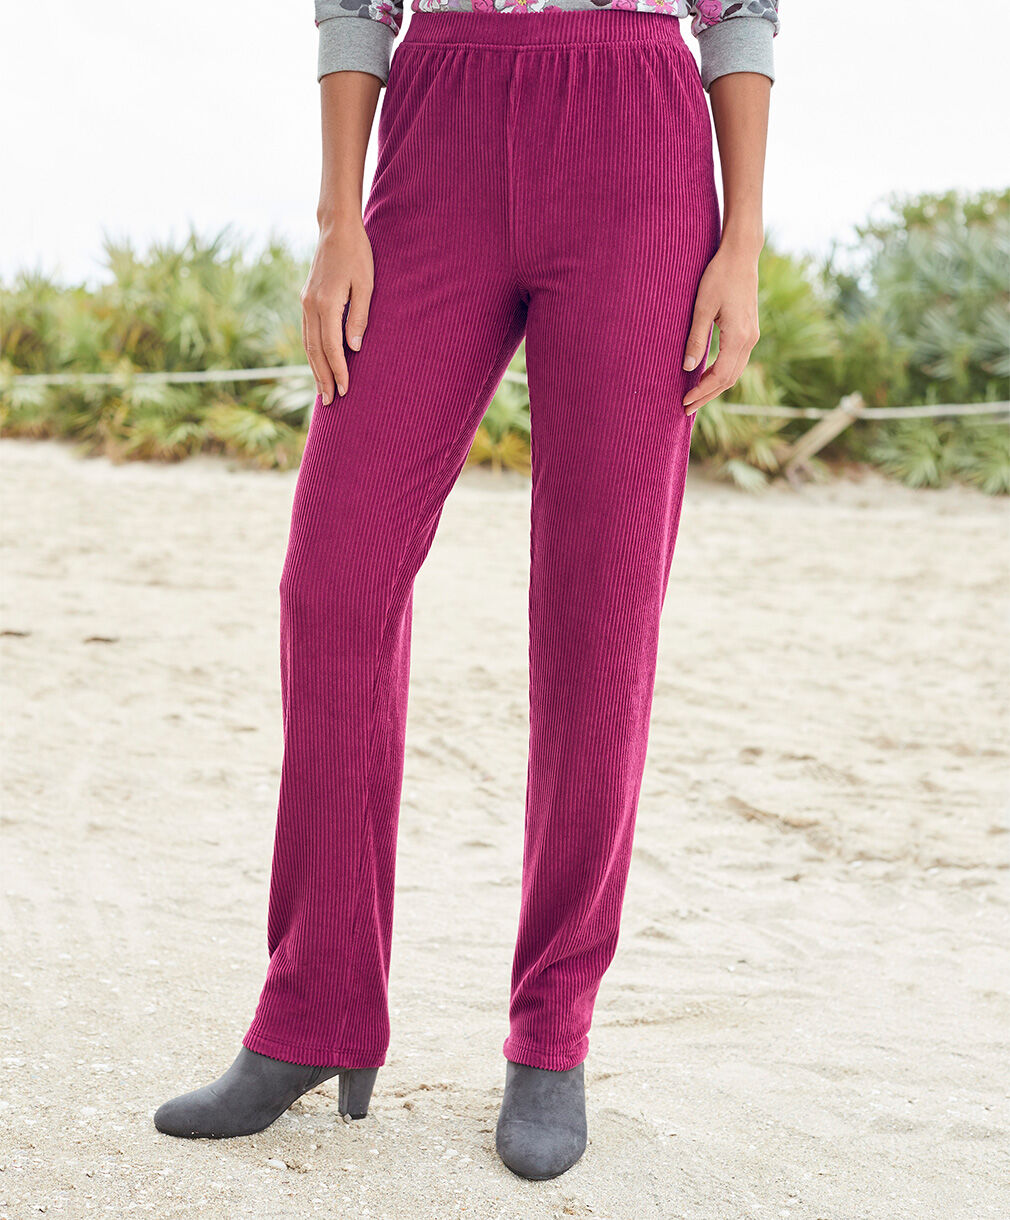 Our Top Trousers | Supersoft Pull-on Cord Trousers | By Cotton Traders